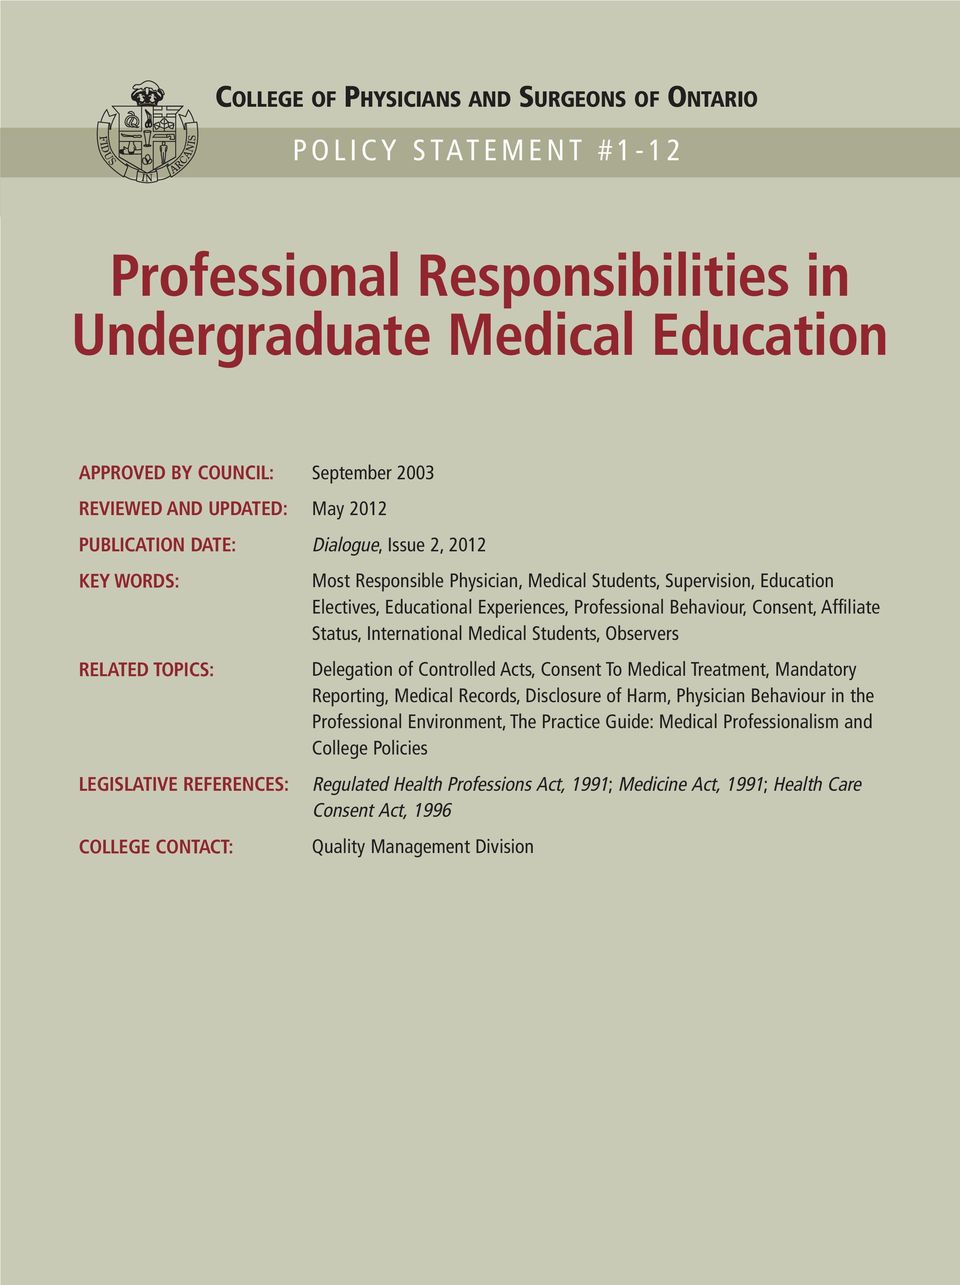 Education Electives, Educational Experiences, Professional Behaviour, Consent, Affiliate Status, International Medical Students, Observers Delegation of Controlled Acts, Consent To Medical Treatment,